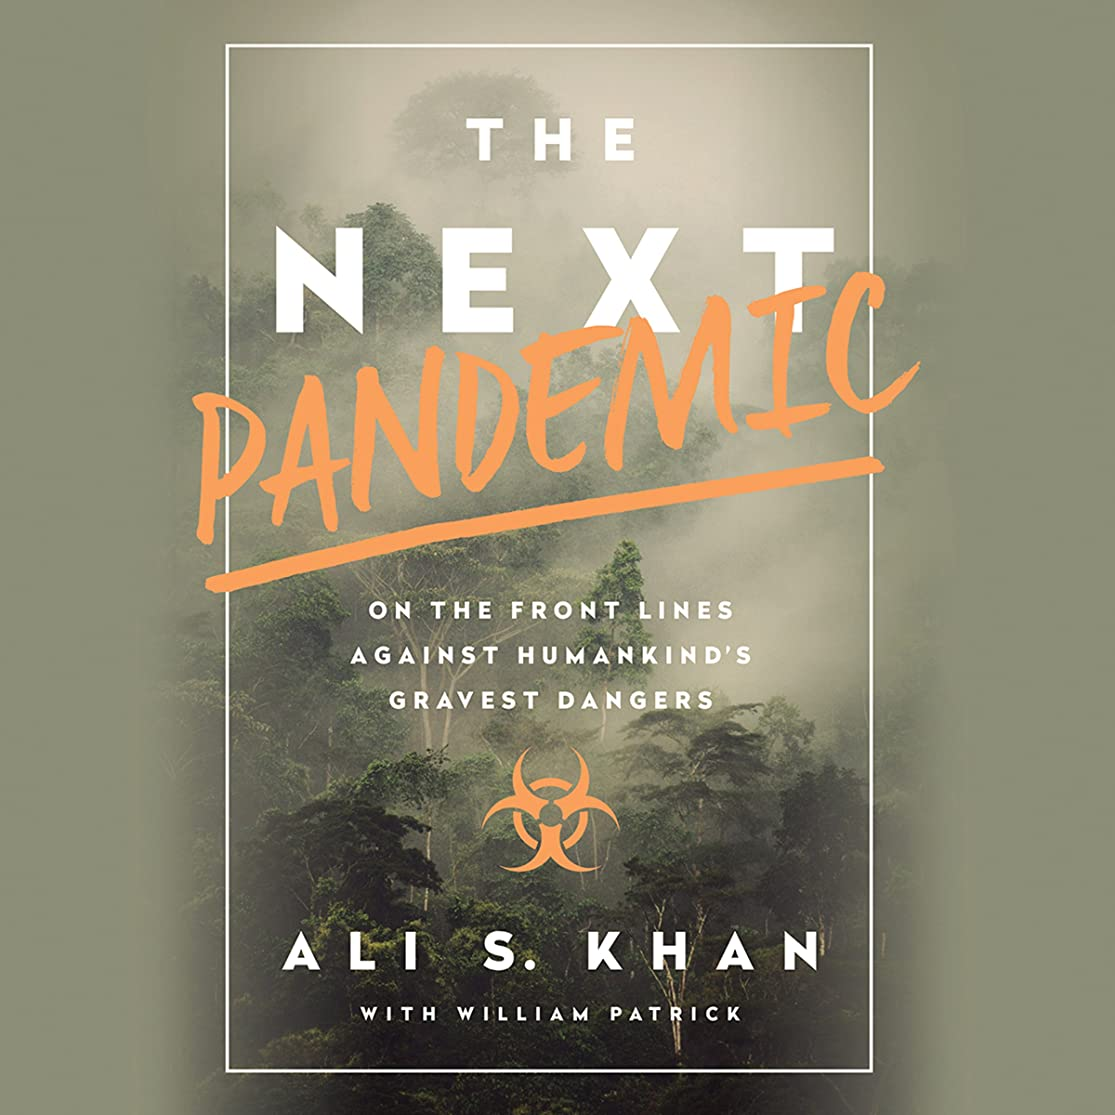 The Next Pandemic: On the Front Lines Against Humankind's Gravest Dangers pvqotqqh4